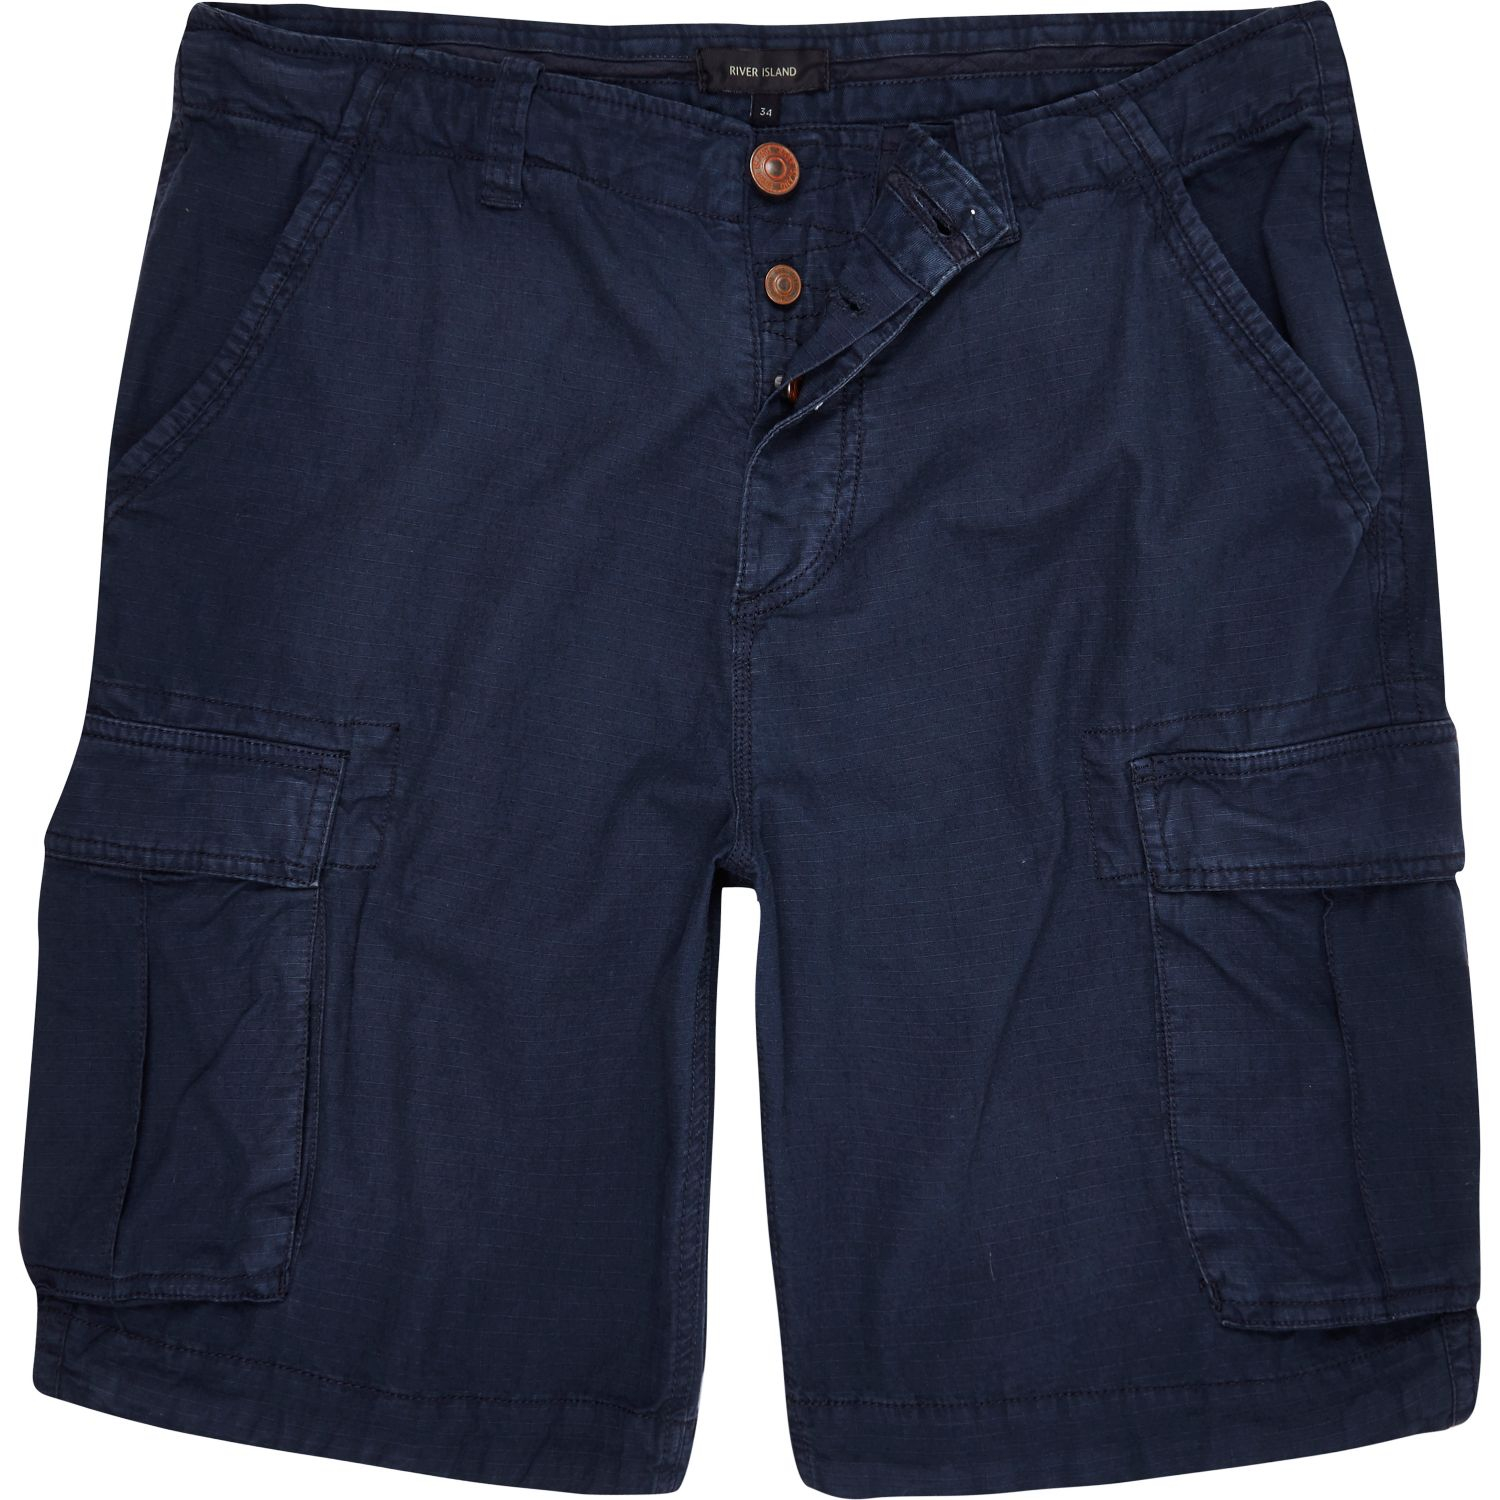 Navy Blue Mens Cargo Shorts